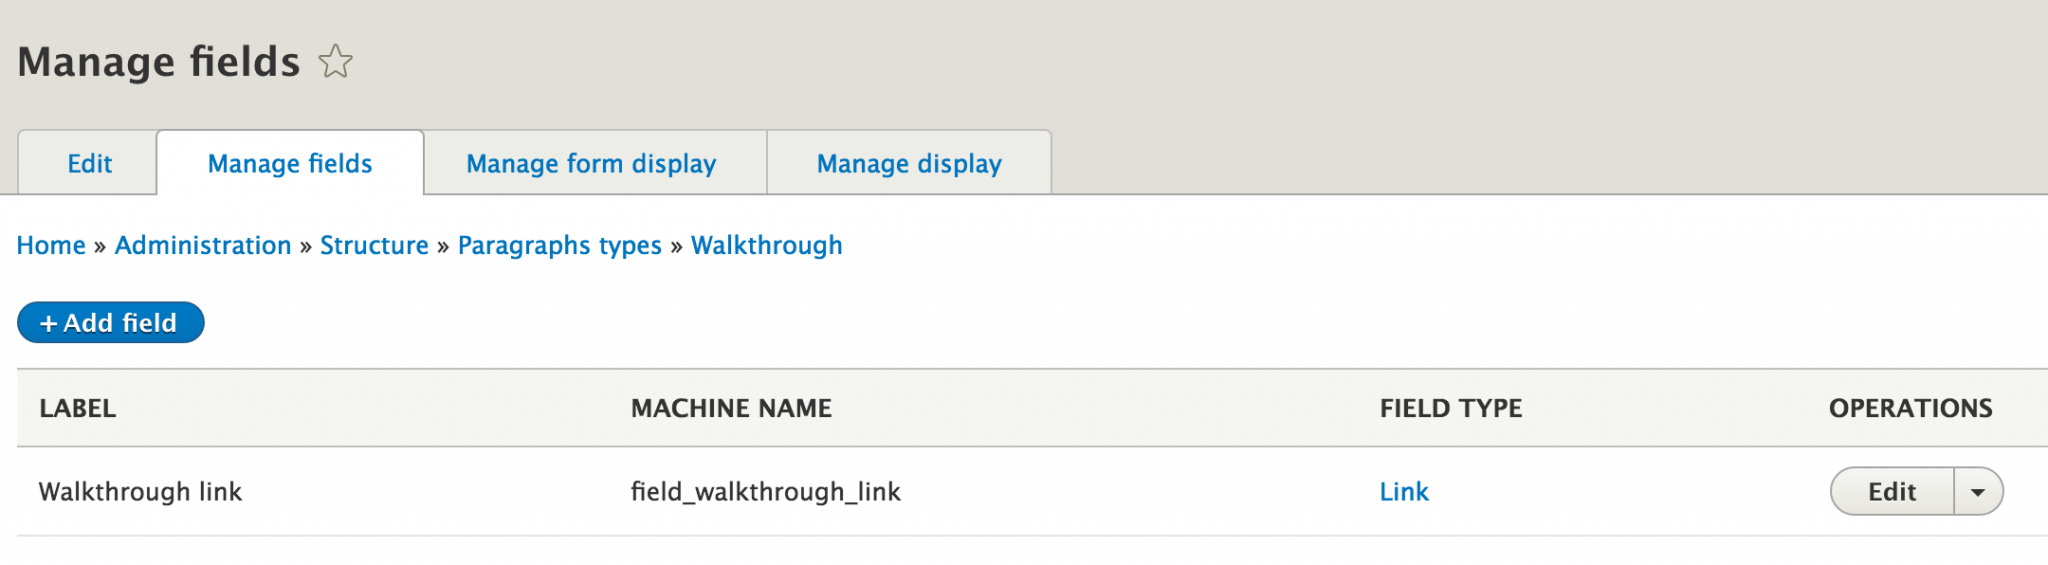 Generating embeddable Help widgets from a Drupal 8 site